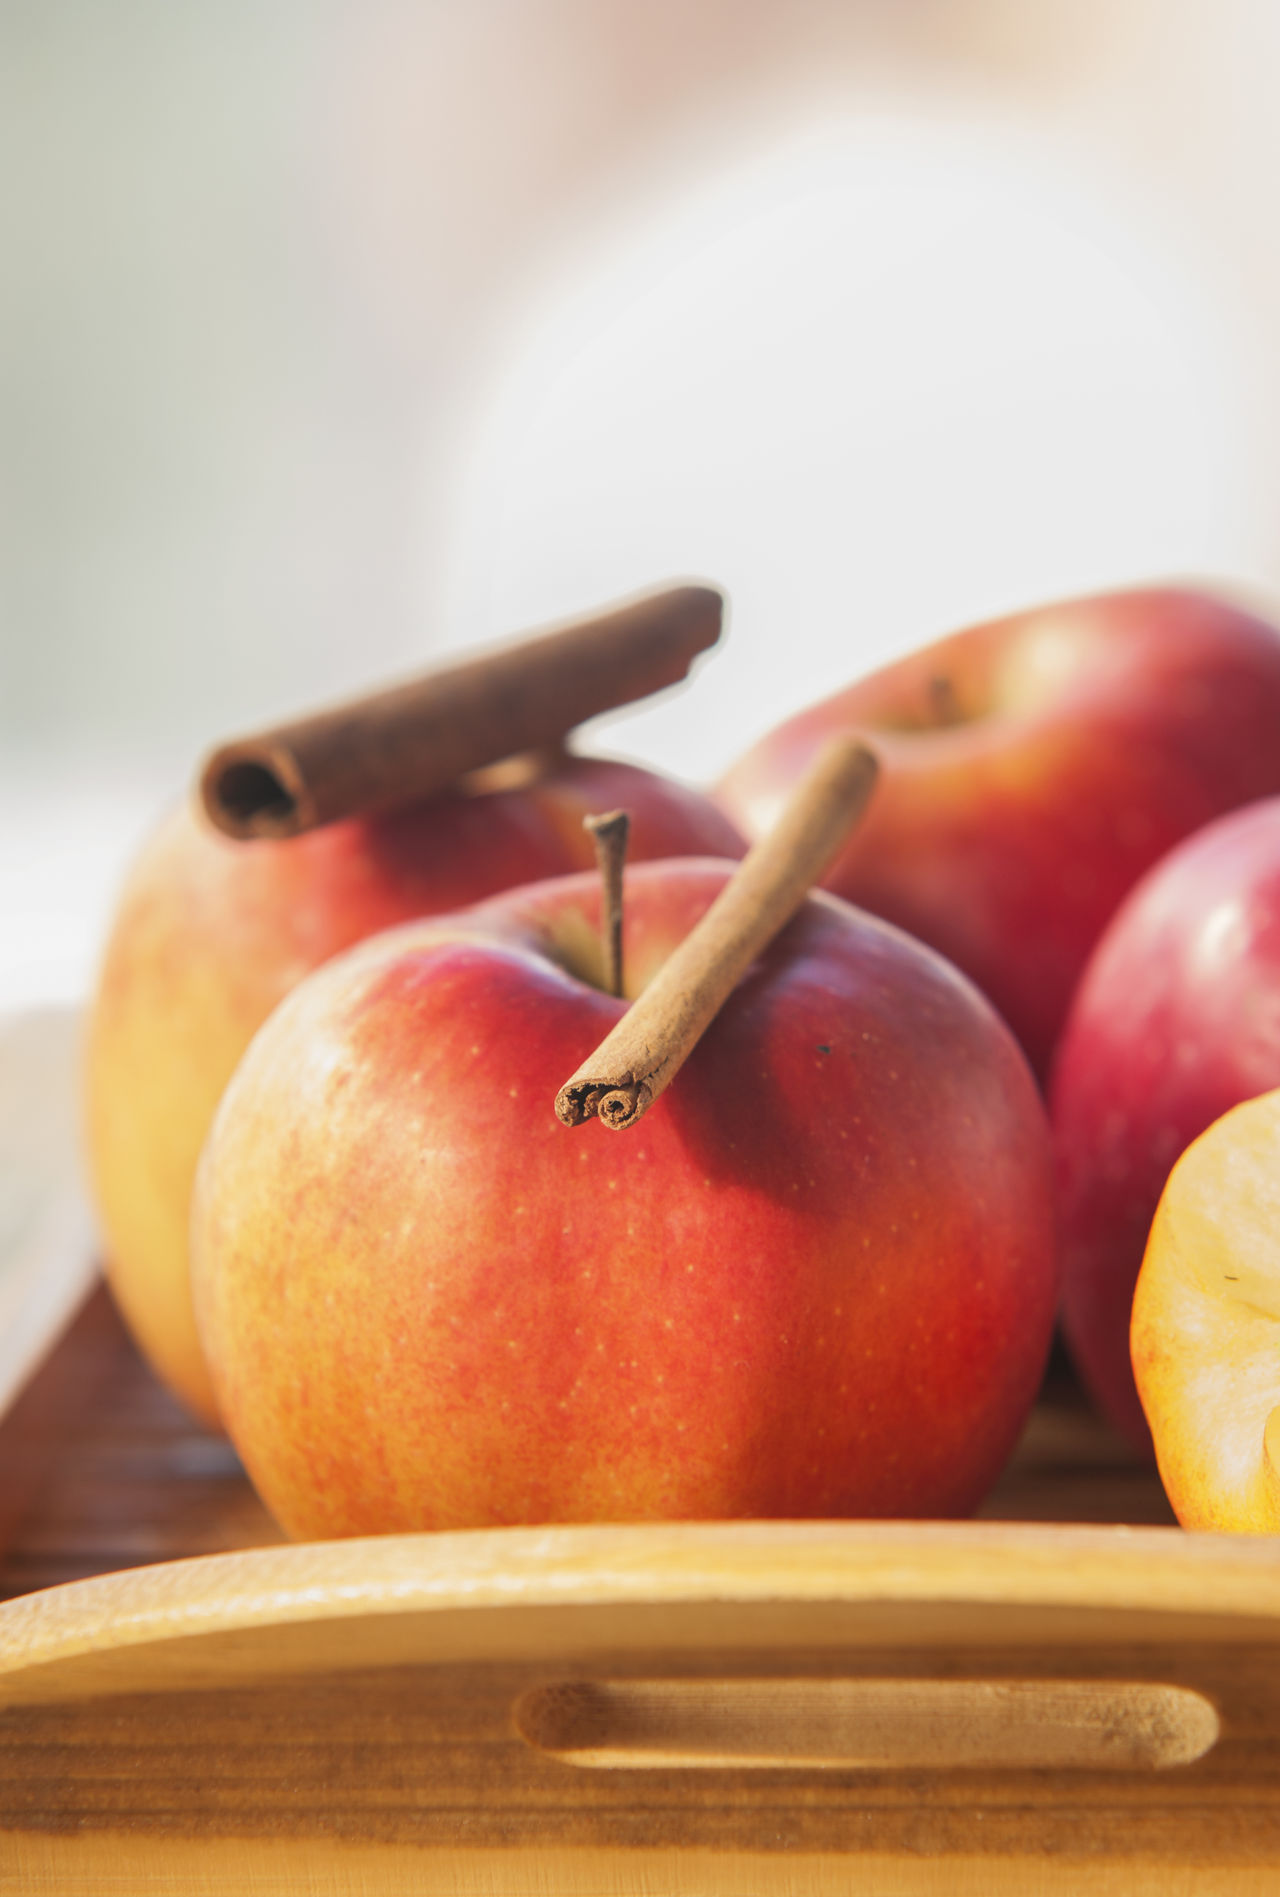 Beautiful stock photos of healthy eating, Apple - Fruit, Cinnamon, Food, Food And Drink